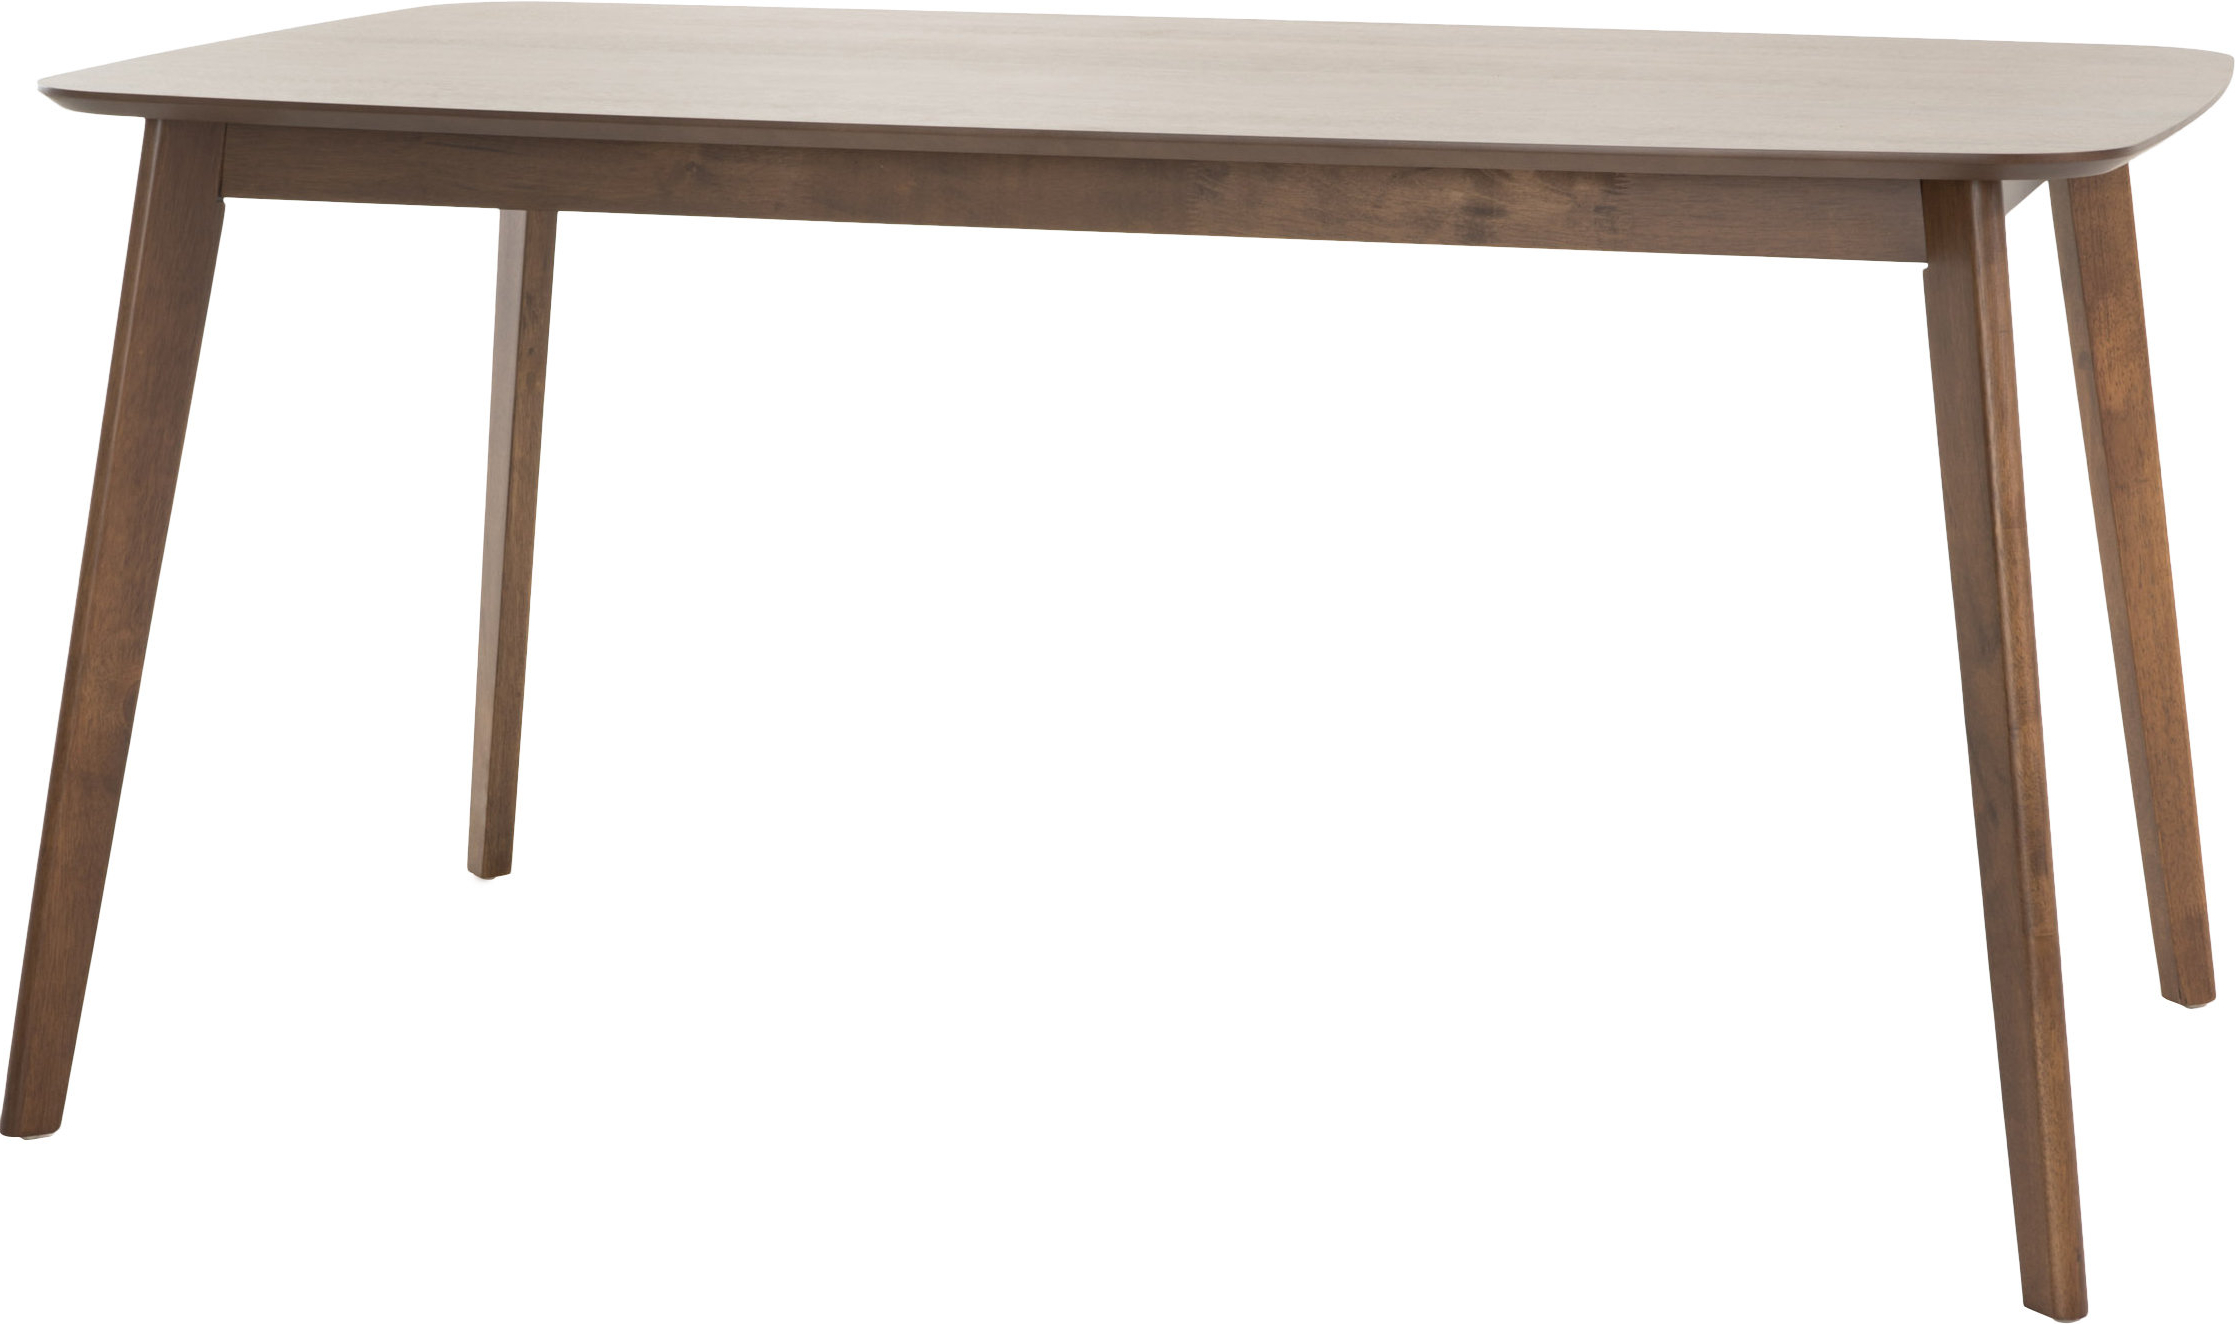 Allmodern Intended For Most Recently Released Amir 5 Piece Solid Wood Dining Sets (Set Of 5) (View 3 of 25)